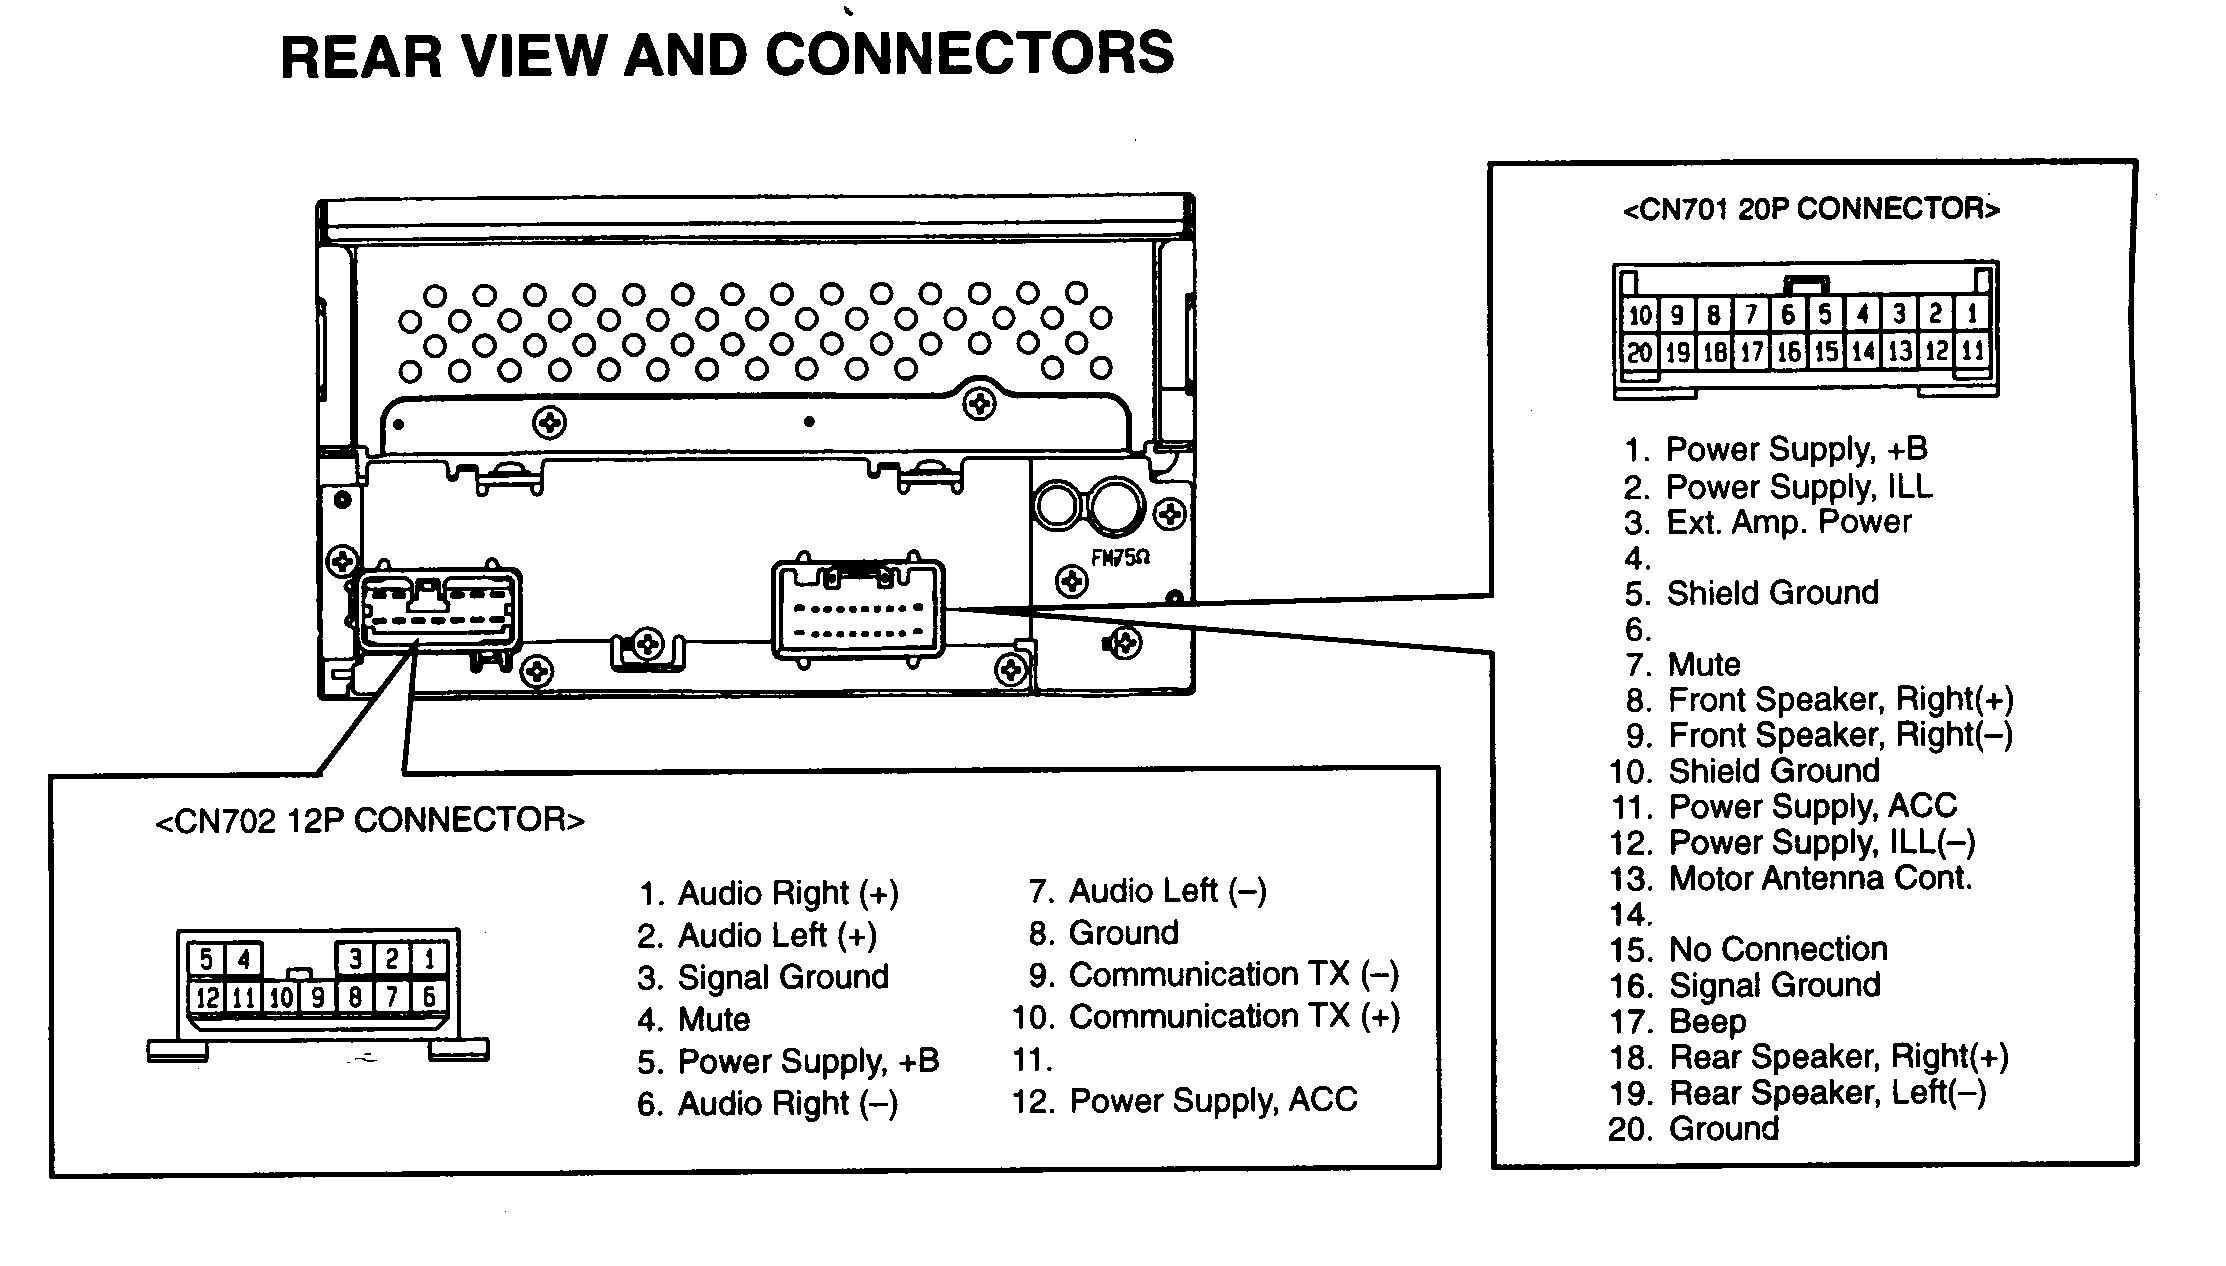 cadillac bose amp wiring diagram Download-Wiring Diagram for Jvc Car Stereo New Jvc Kd Sr72 Wiring Diagram Awesome Cadillac Bose Amp 13-l